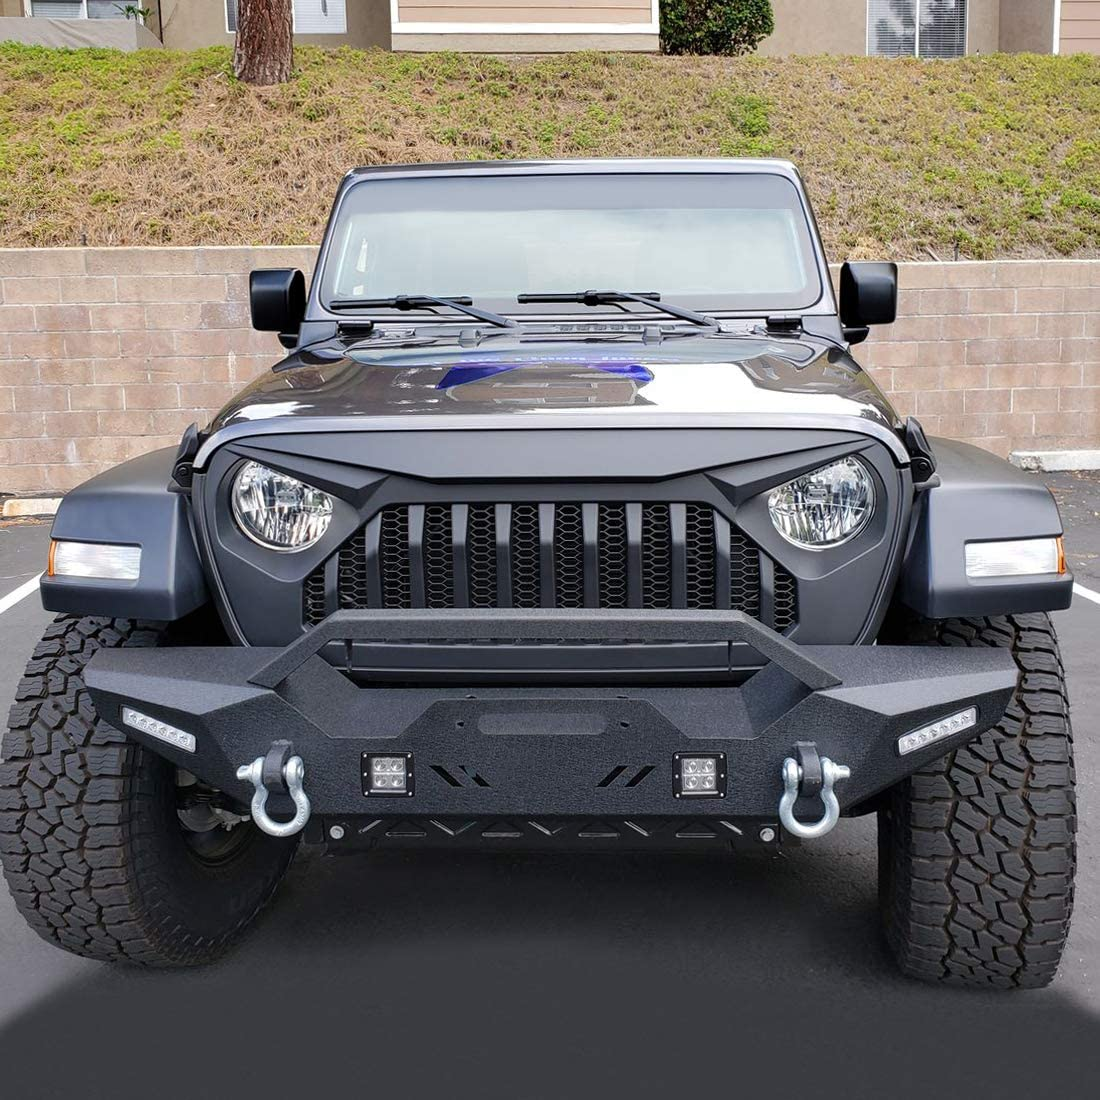 Extreme Off-Road JL Front Grill with Mesh Grille Cover for 2018 2019 2020 Jeep Wrangler JL /& Gladiator JT Matte Black